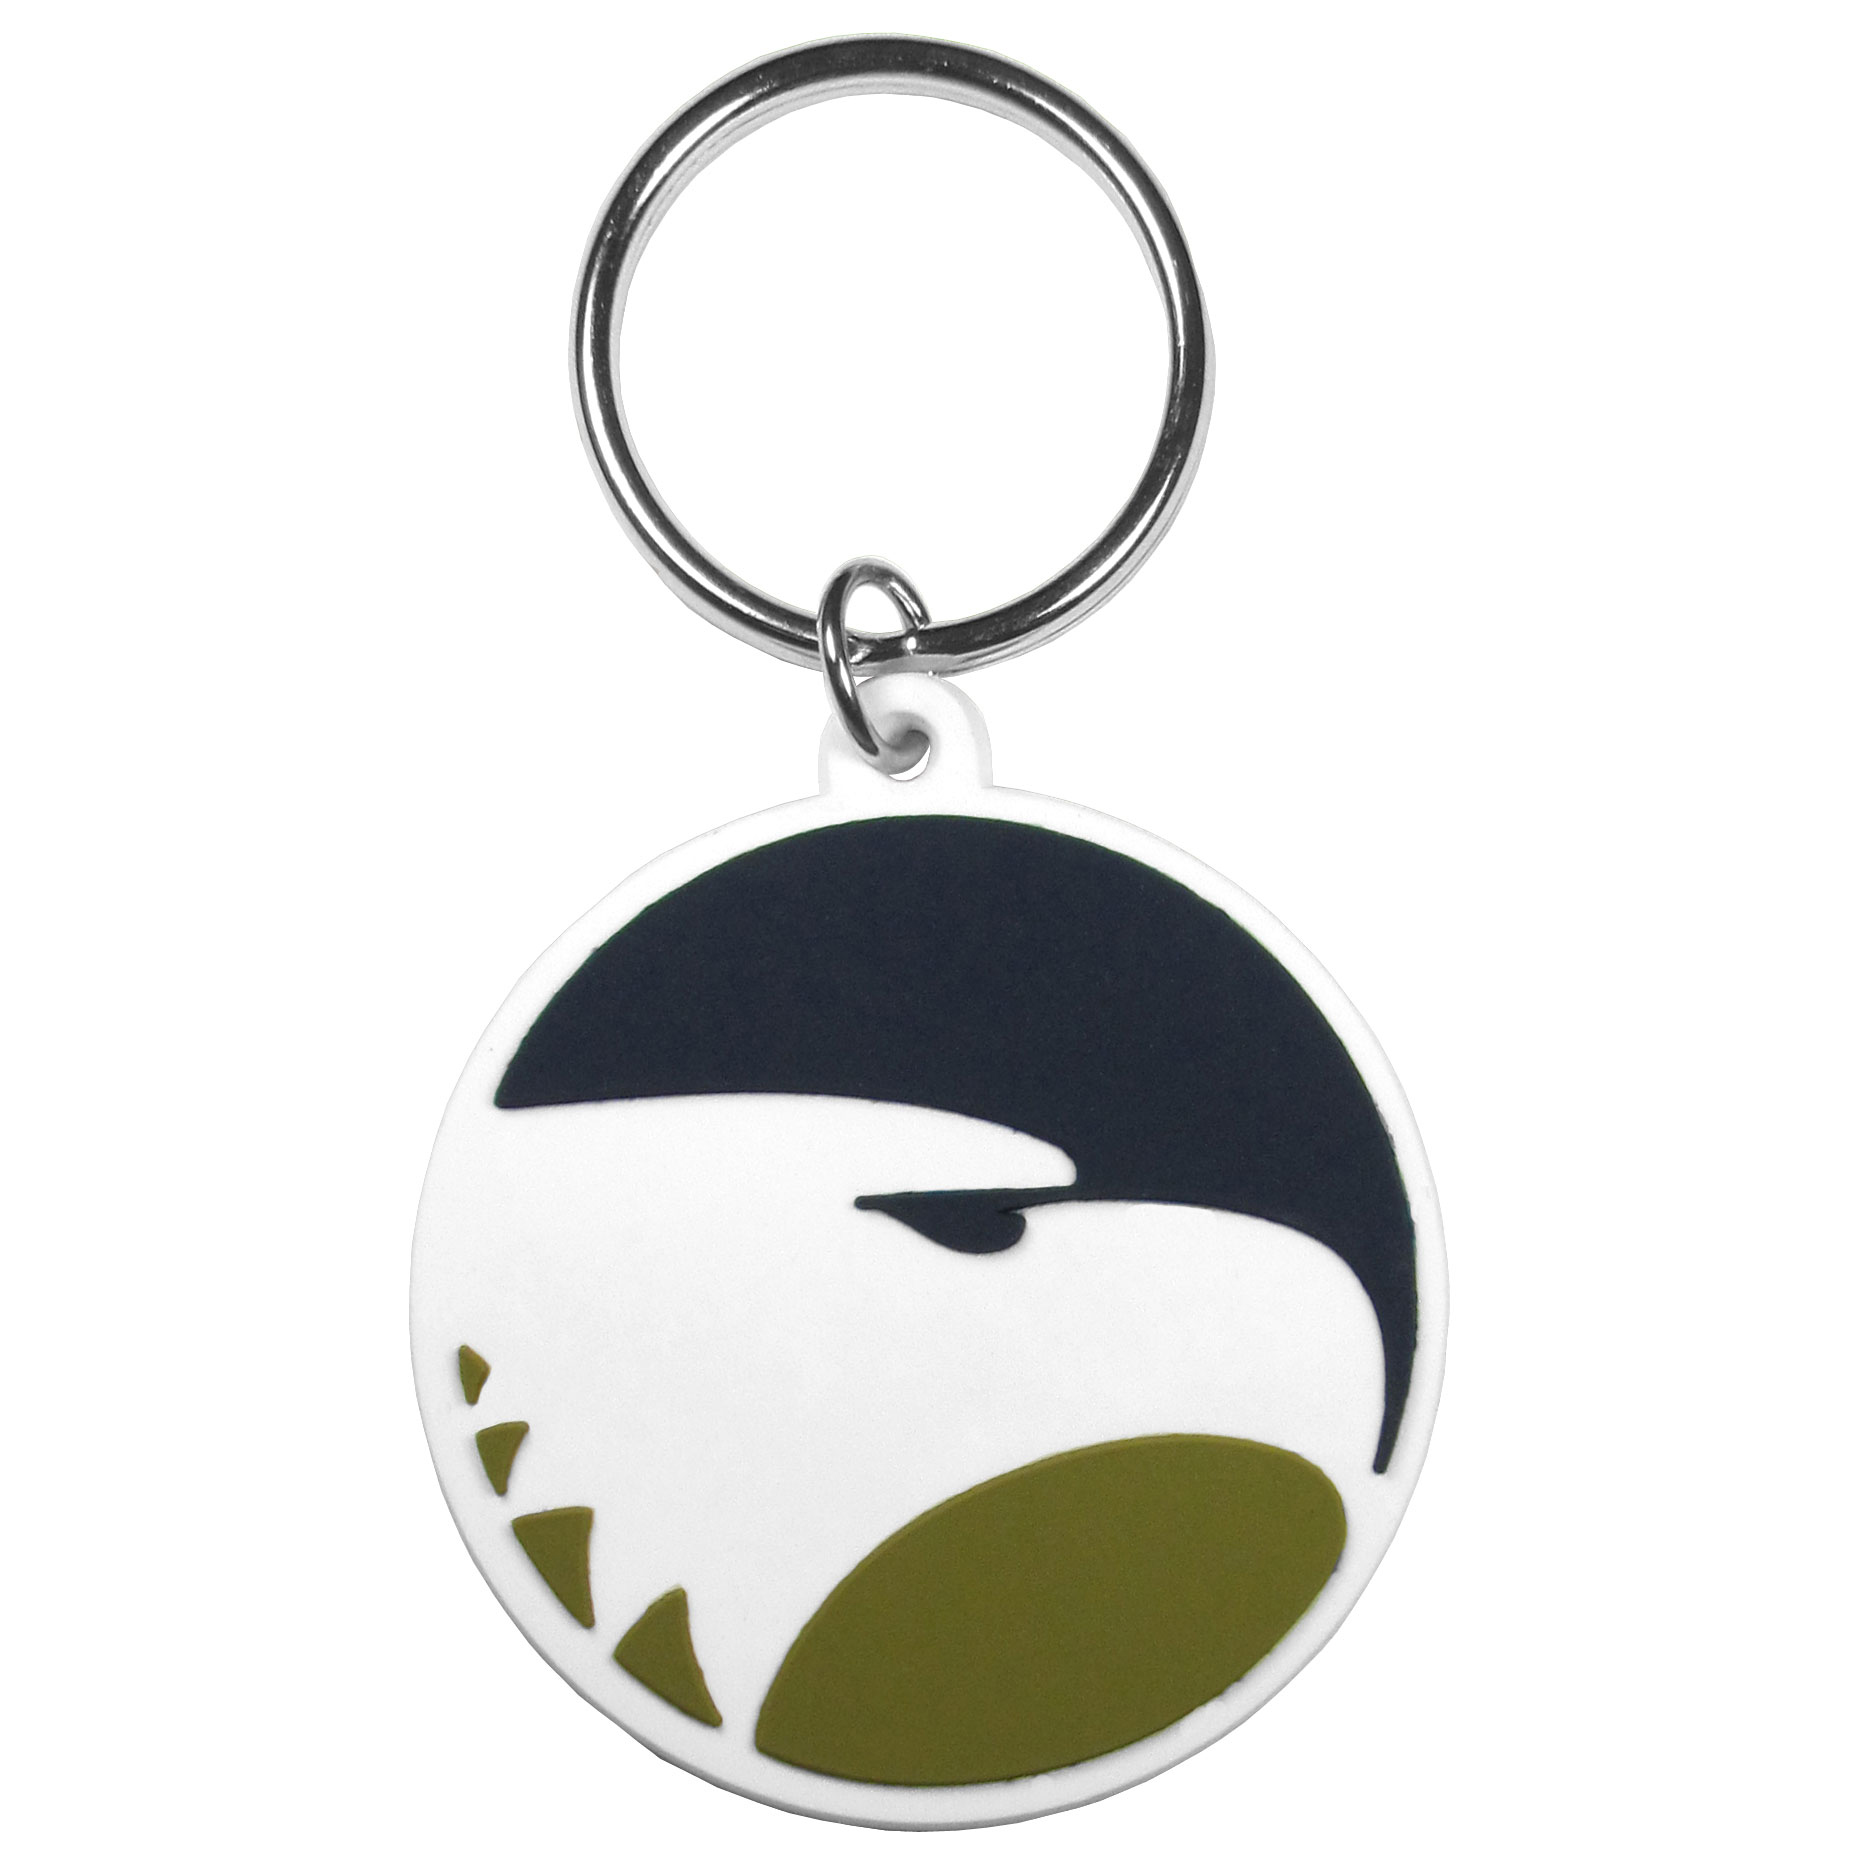 Georgia Southern Eagles Flex Key Chain - Our fun, flexible Georgia Southern Eagles key chains are made of a rubbery material that is layered to create a bright, textured logo.